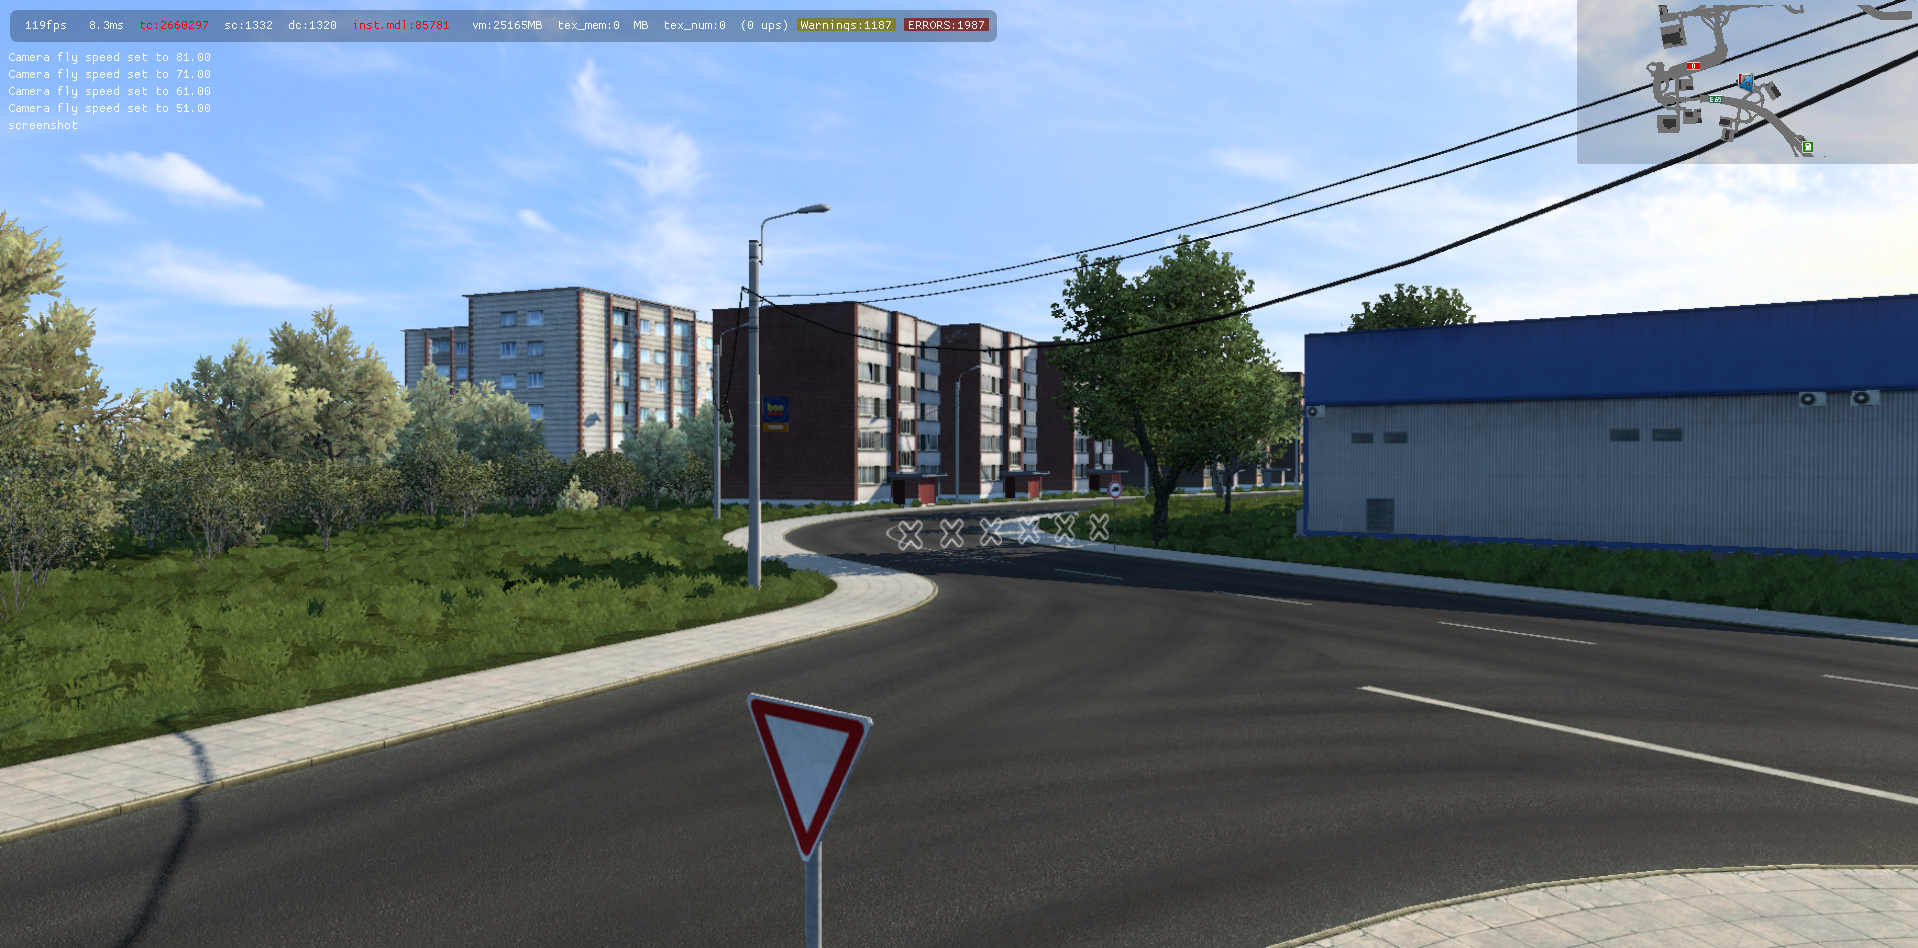 ets2_20210612_150742_00.png